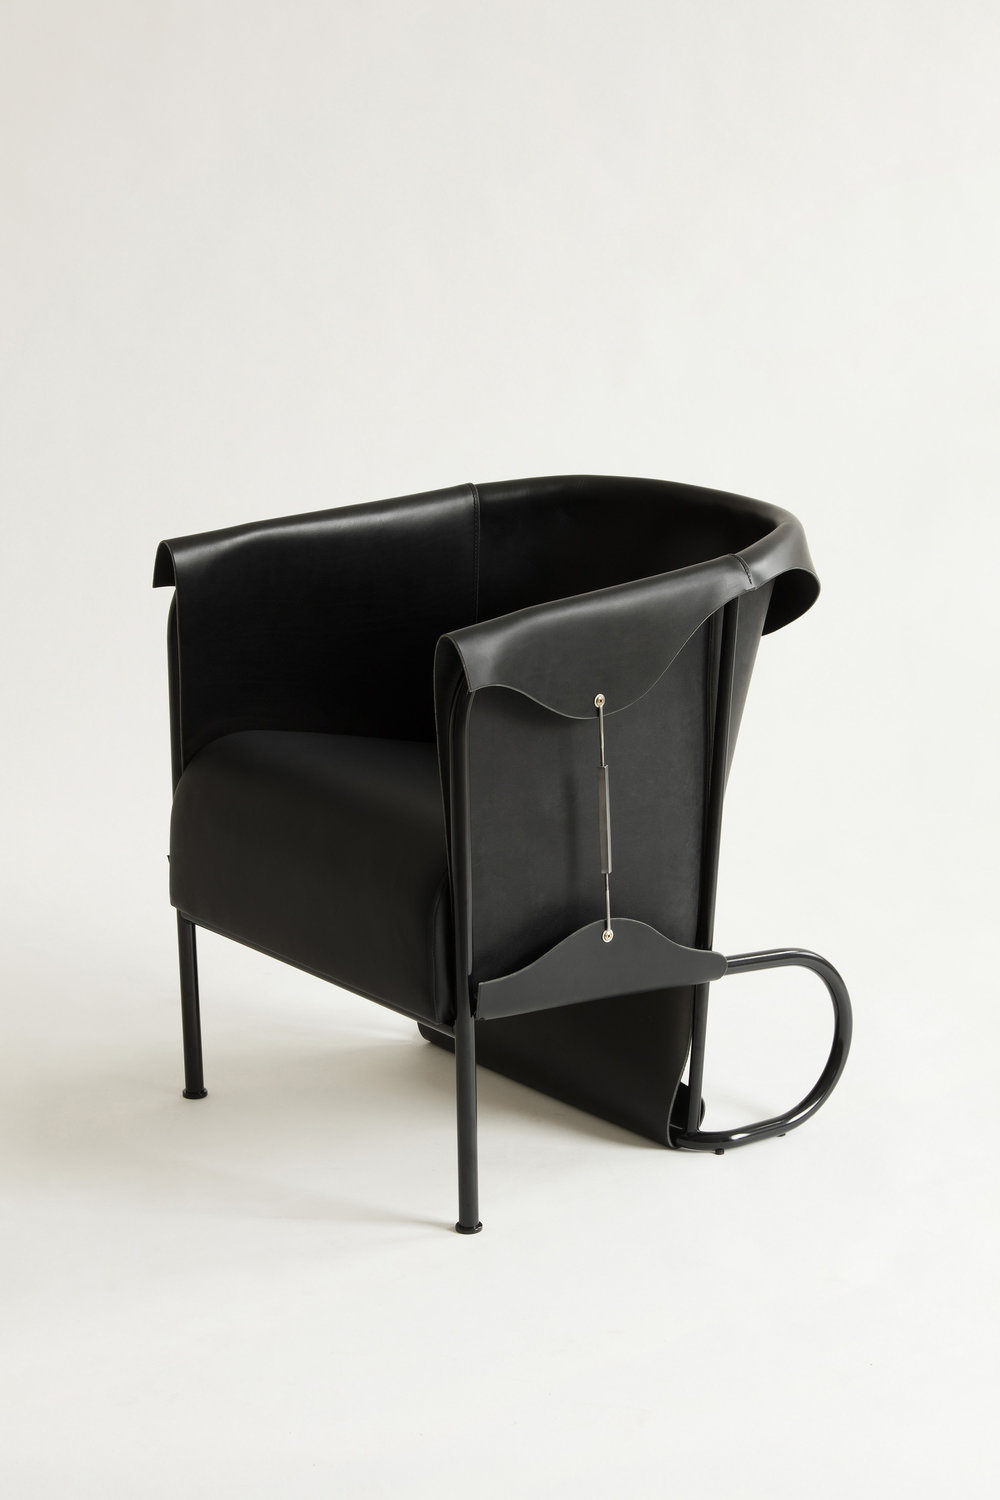 Untitled Club Chair Front 300ppi.jpg